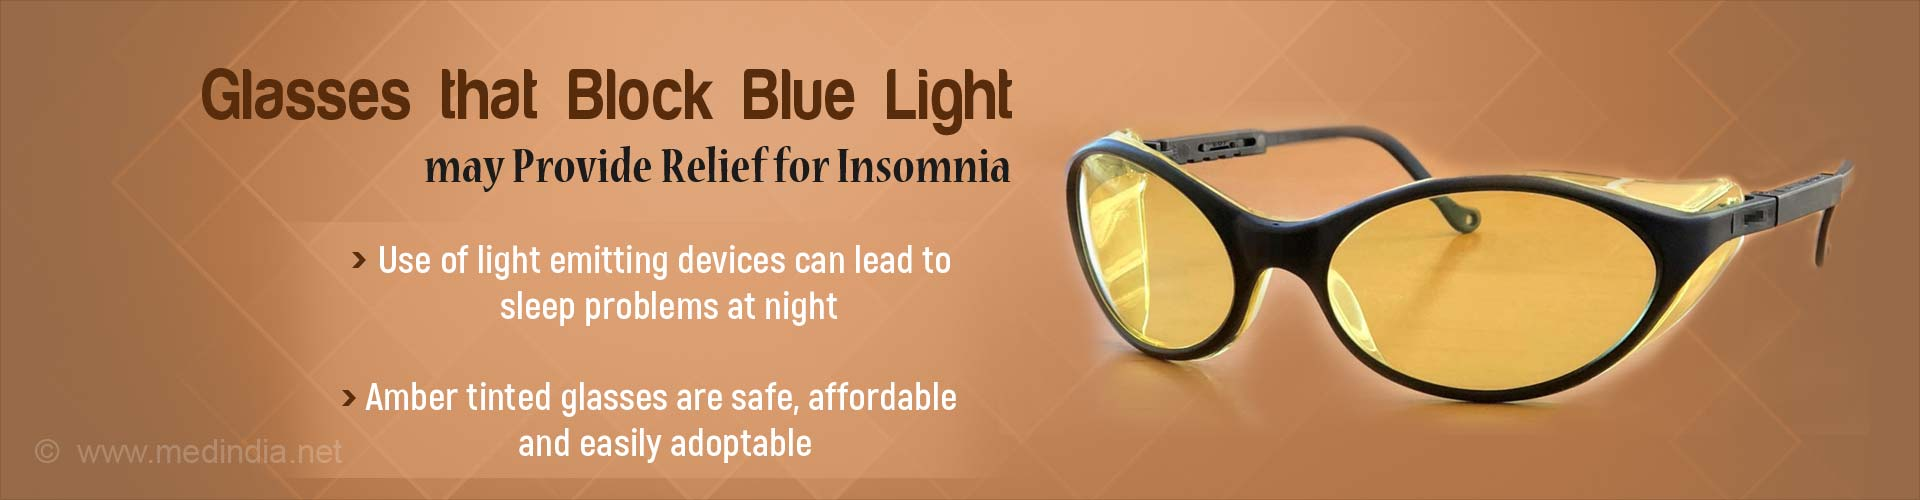 New Light Blocking Glasses may provide Relief from Insomnia